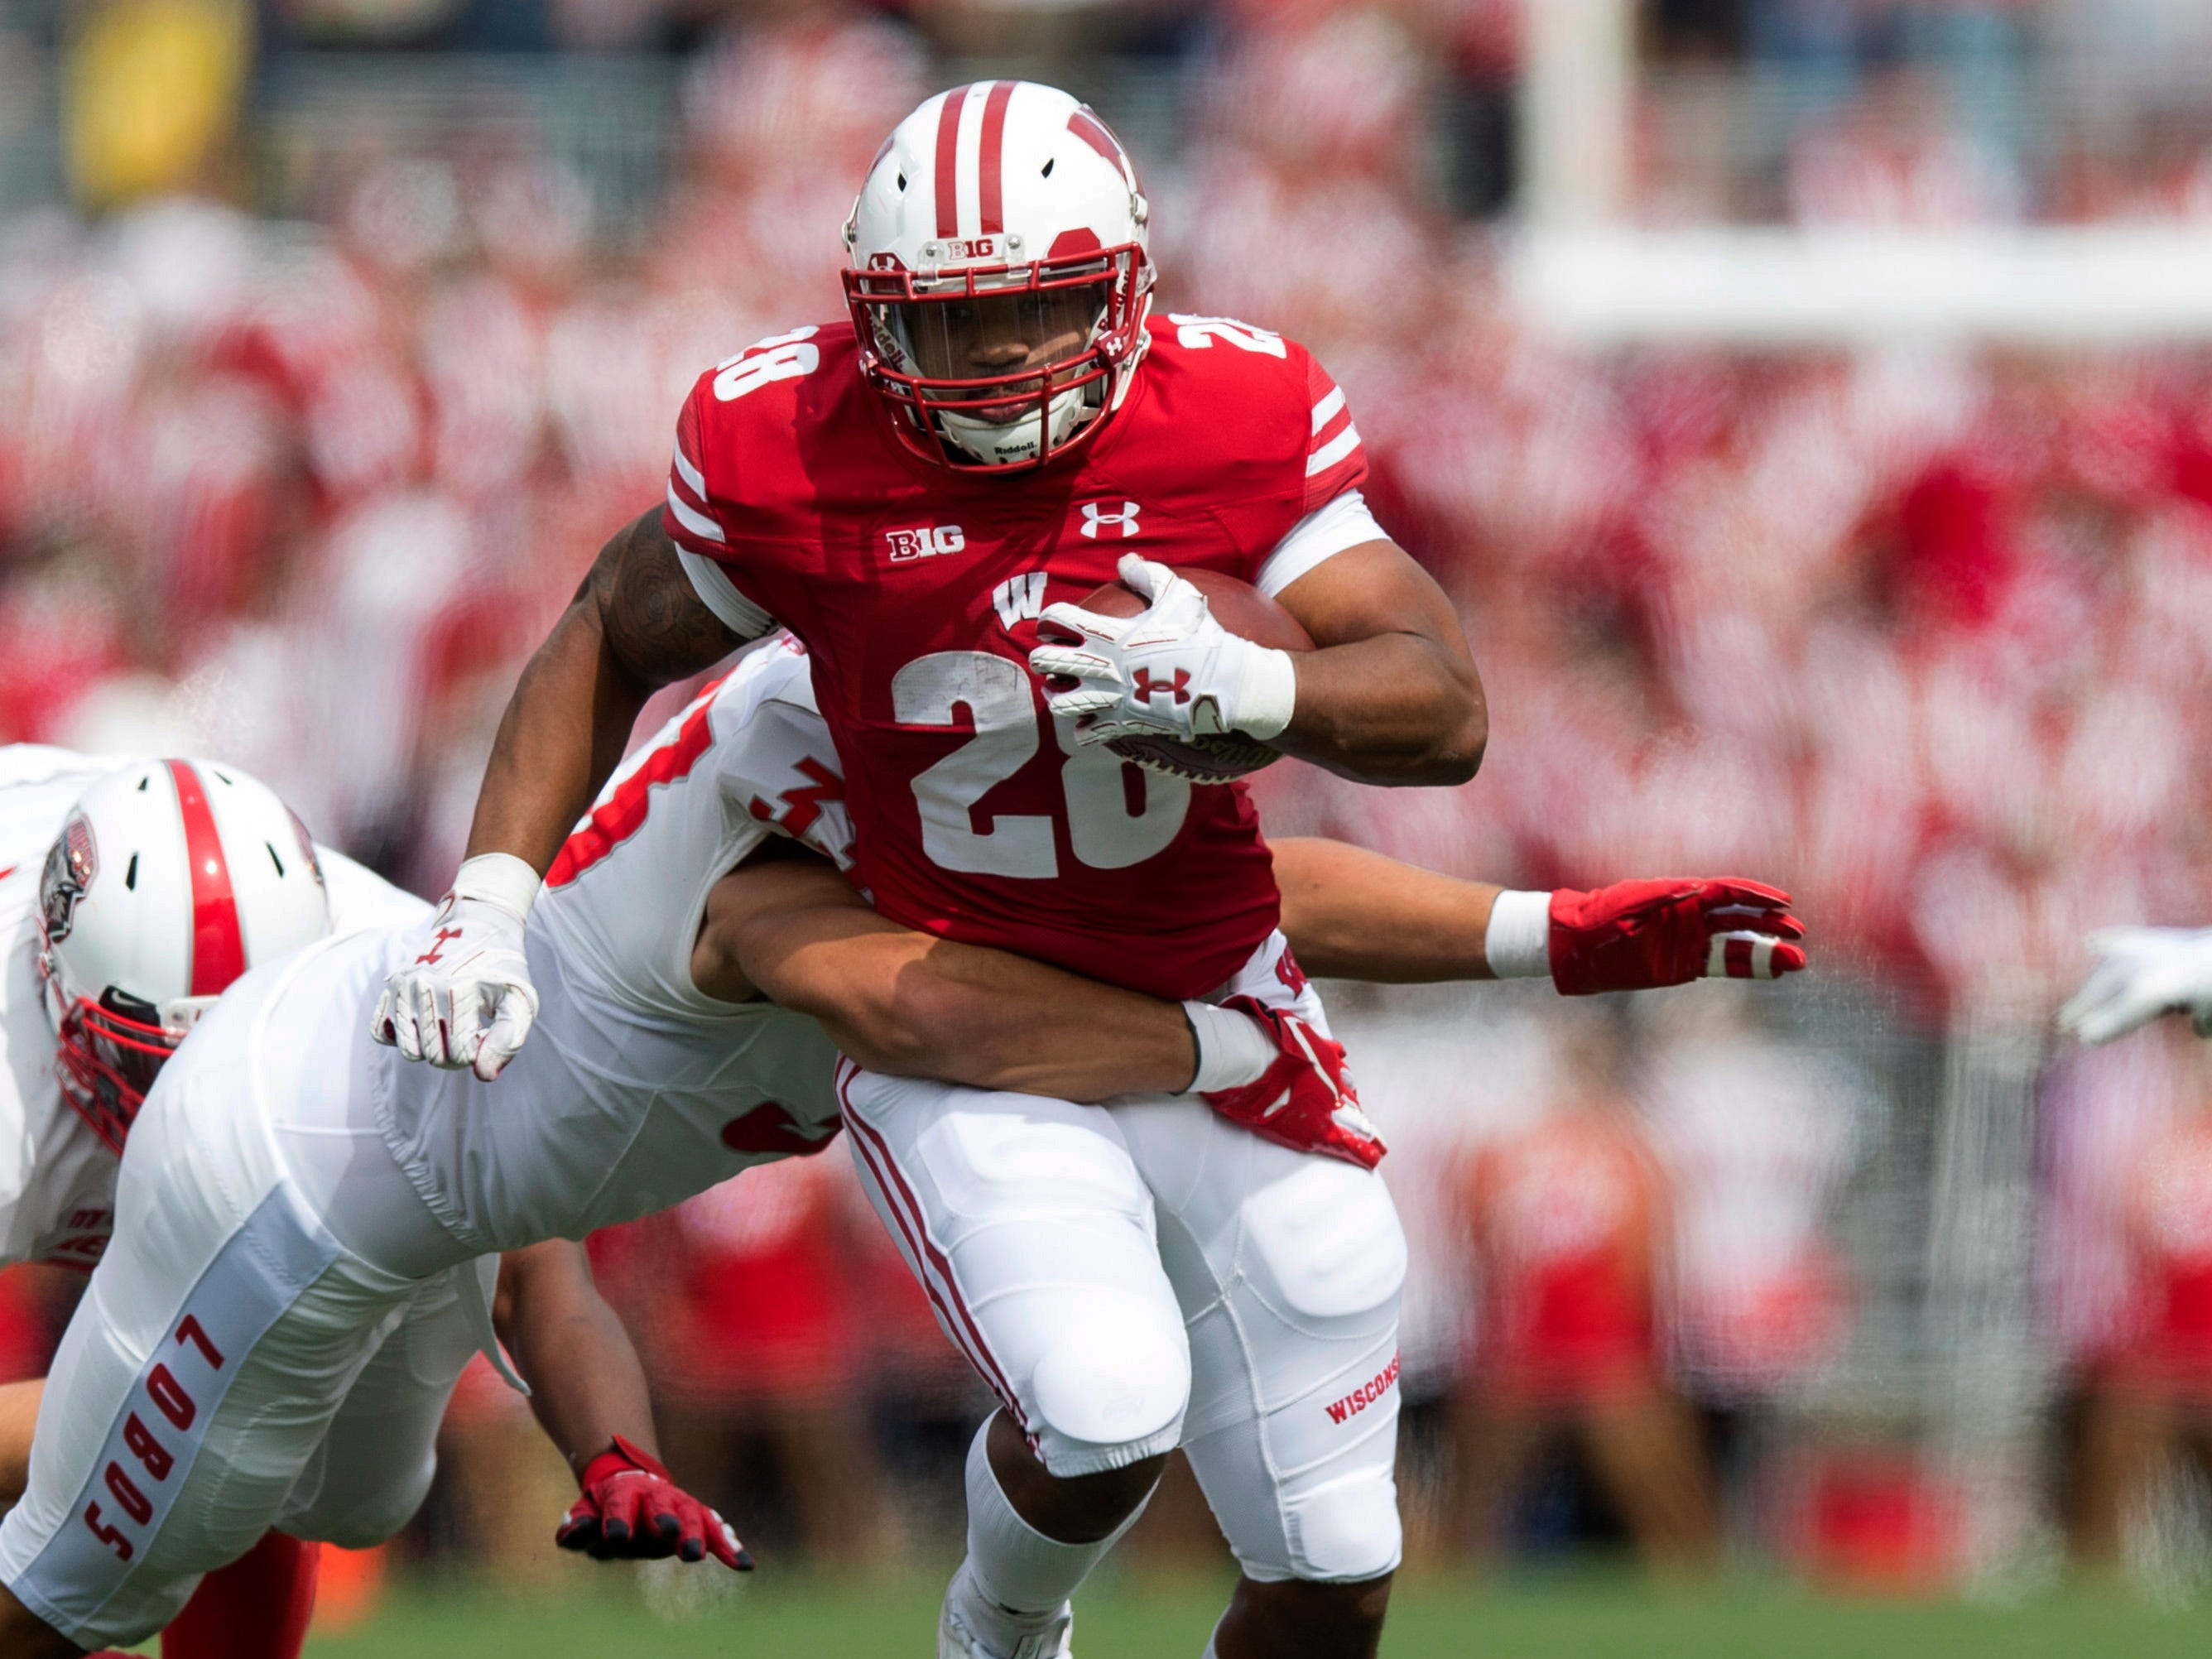 Wisconsin running back Taiwan Deal rushes with the football during the first quarter against New Mexico.